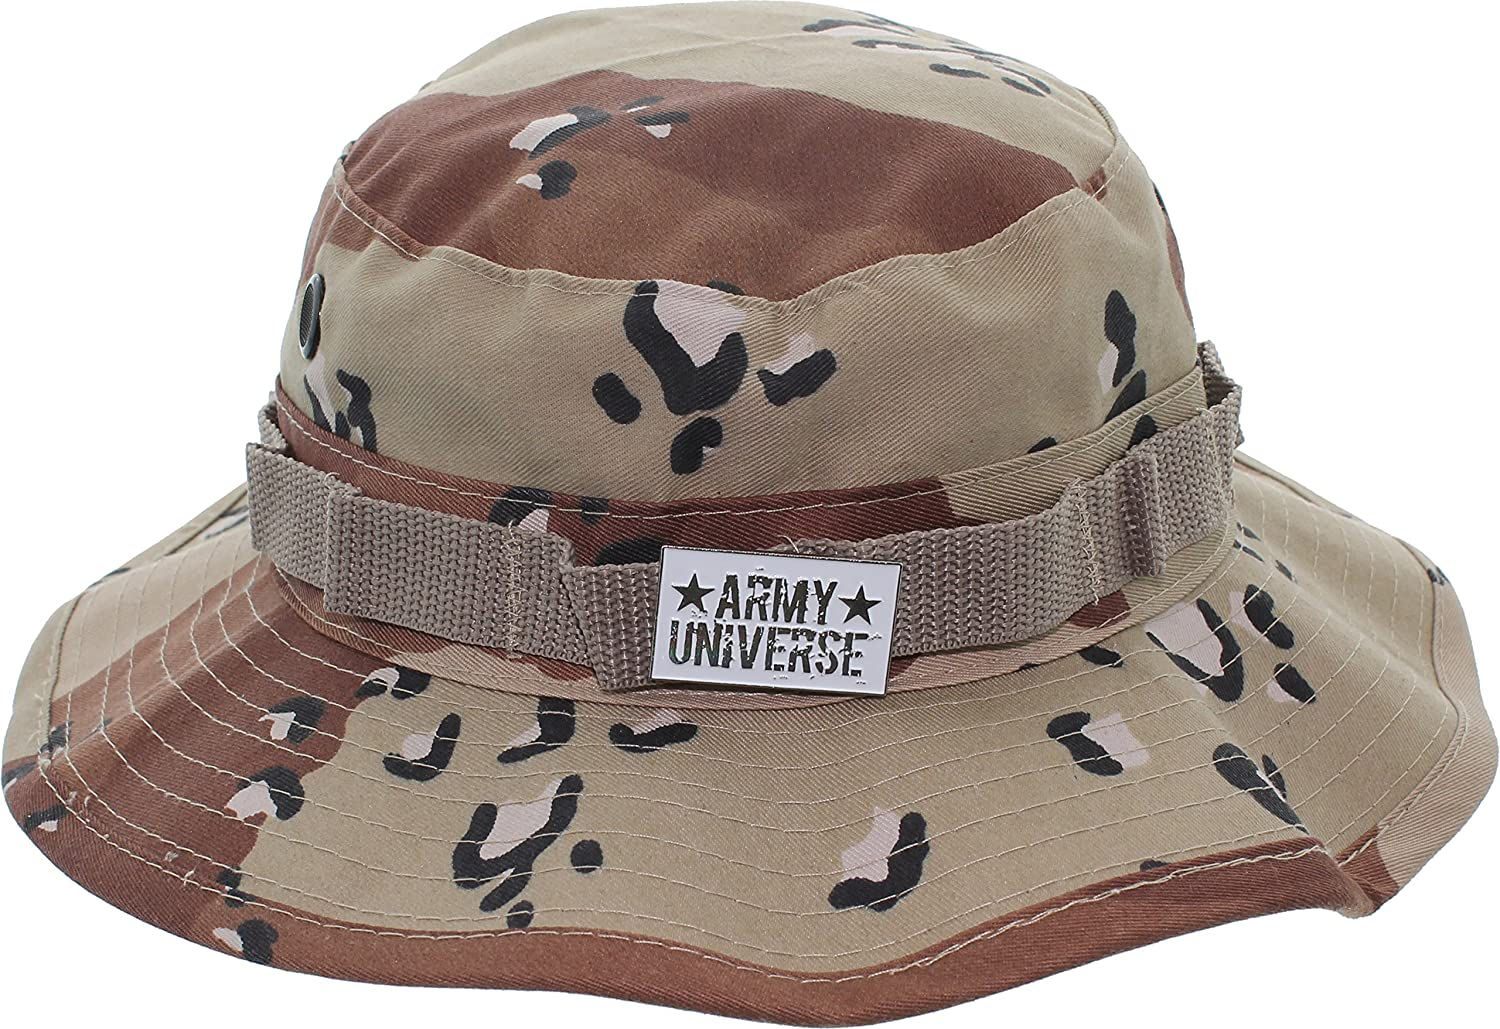 Army Universe Tactical Boonie Hat Military Camo Bucket Wide Brim Sun ... 5fea77f51f0